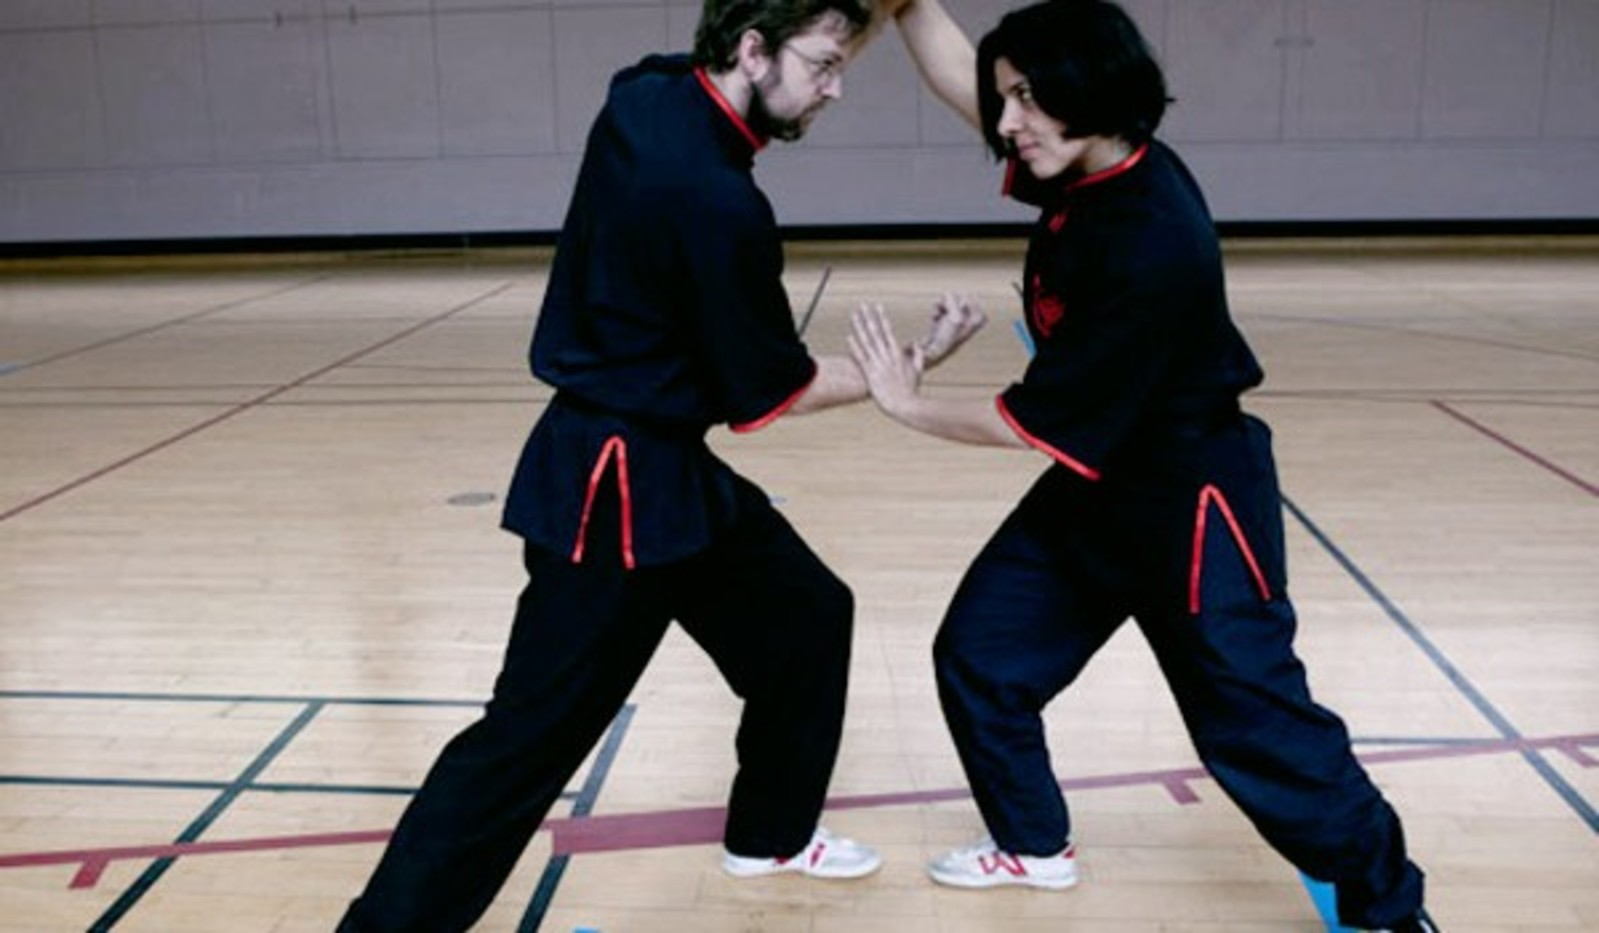 Kung Fu adultes - Ecole Phenix et Dragon